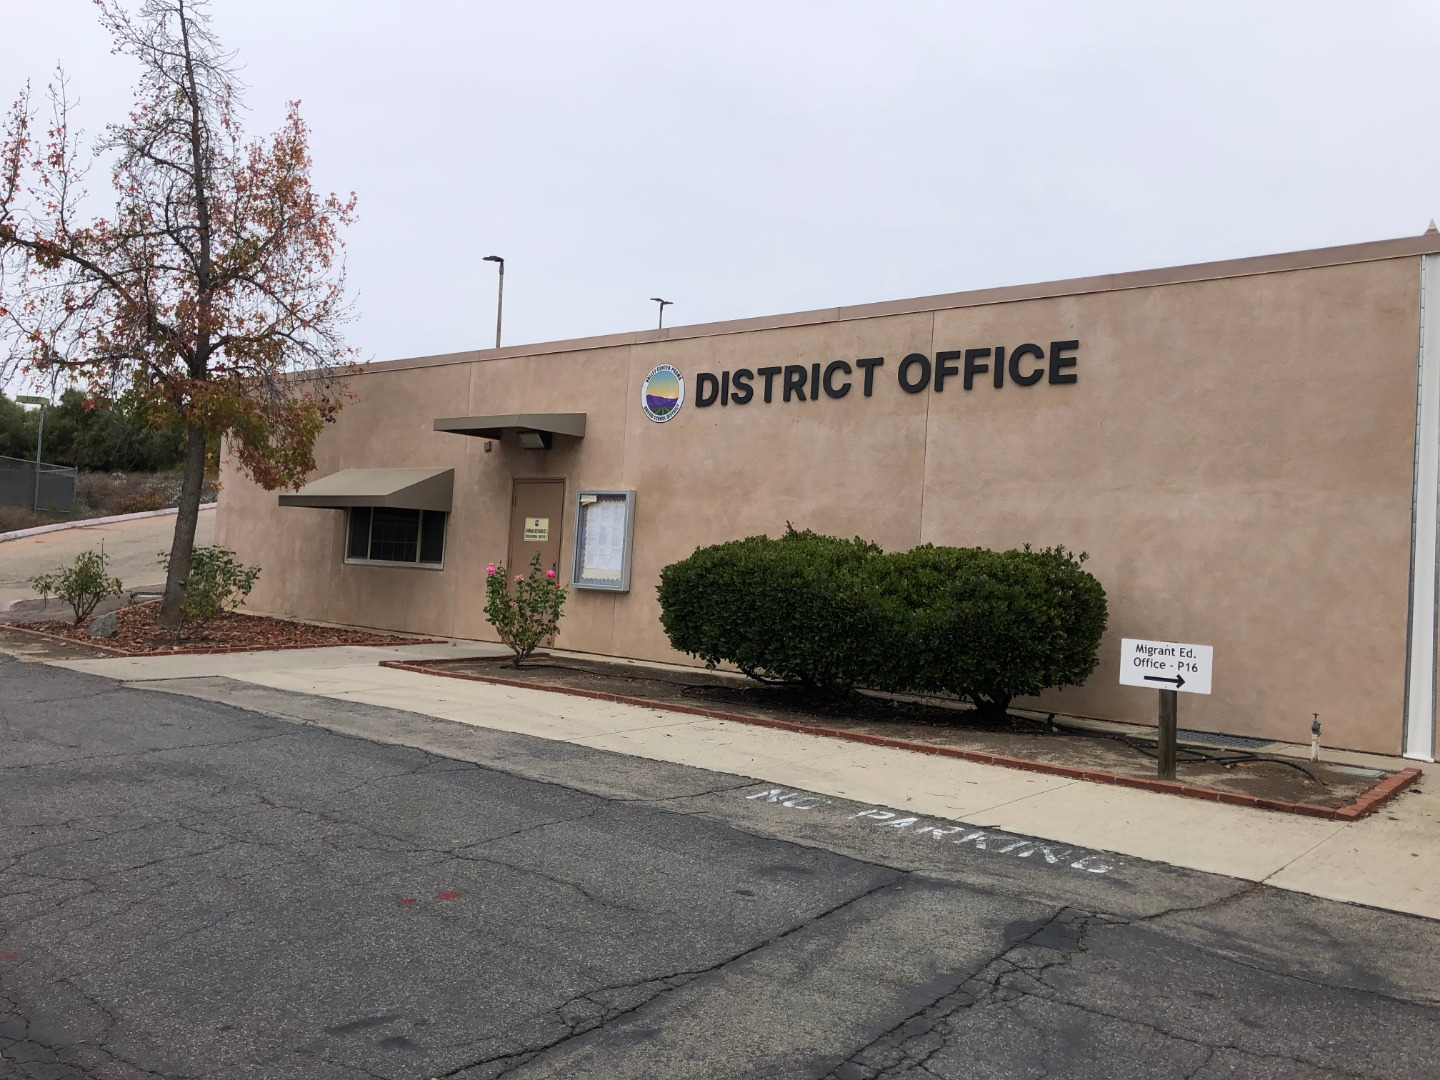 VCPUSD District Office